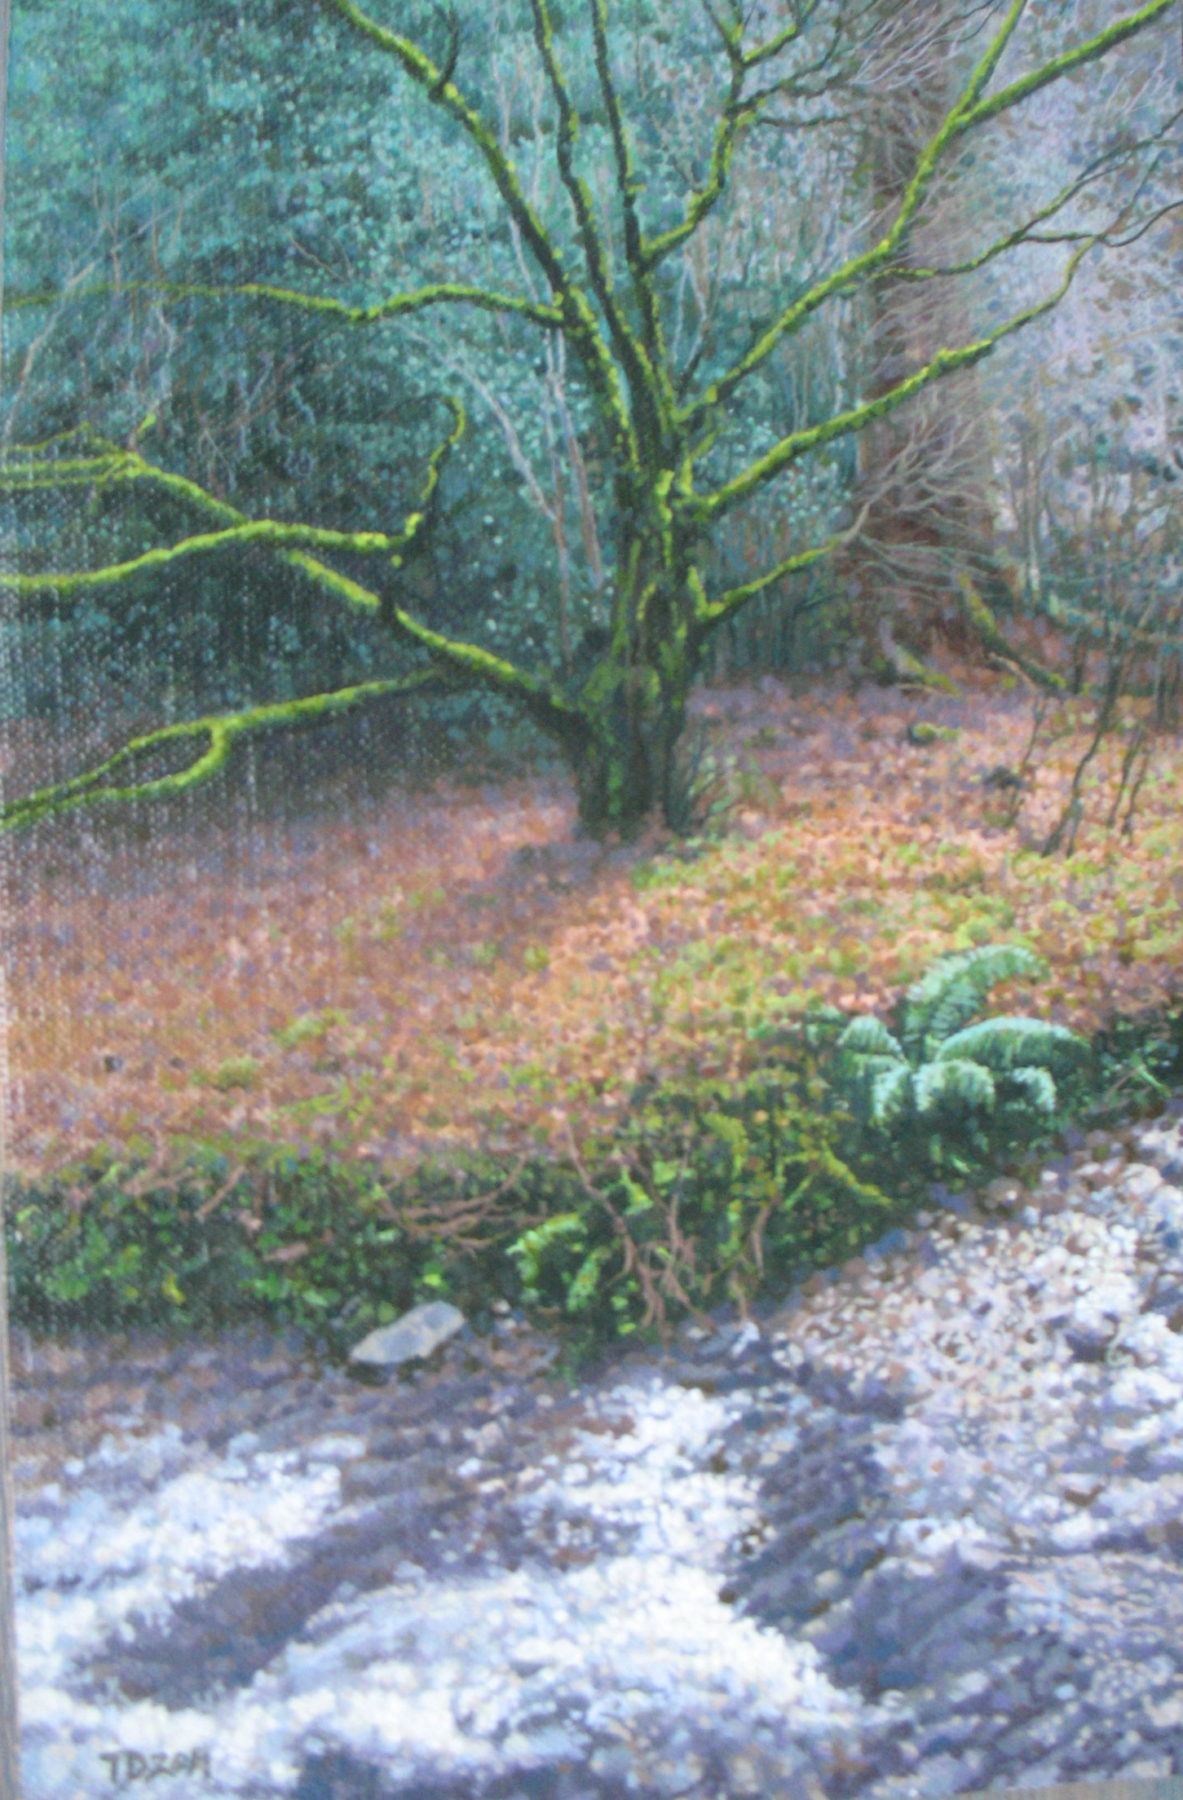 The artist has painted a tree with a short trunk and multiple green-lichen topped branches reaching wide in different directions. It sits atop an orange and green bed of leaves and has green leaved plants growing behind it. In the foreground is a snowy pathway.